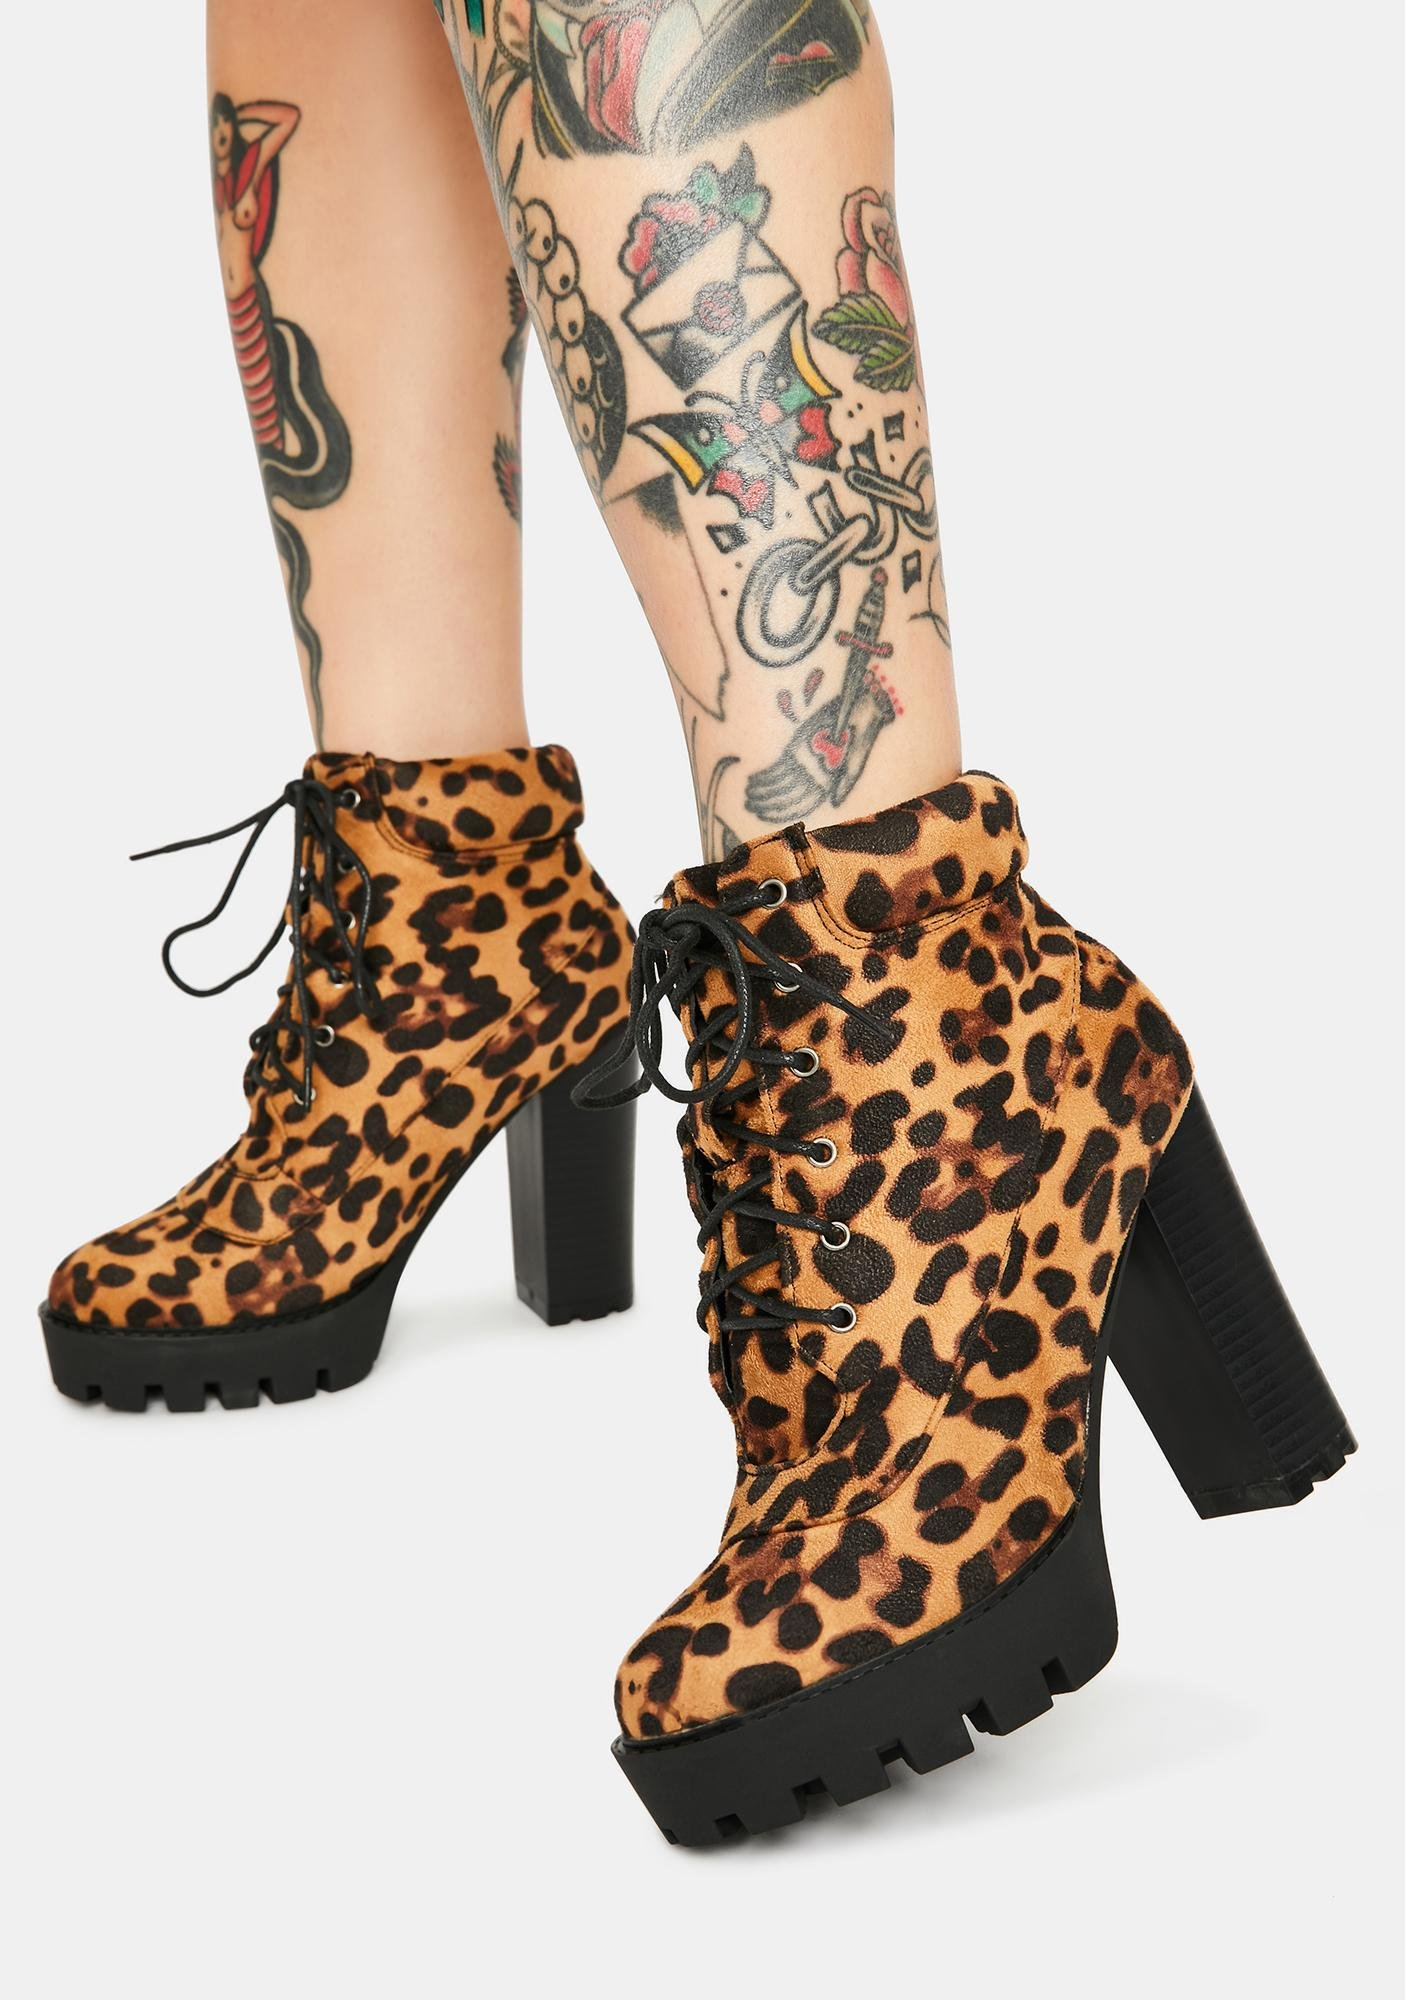 Leopard Wherever You Are Ankle Booties